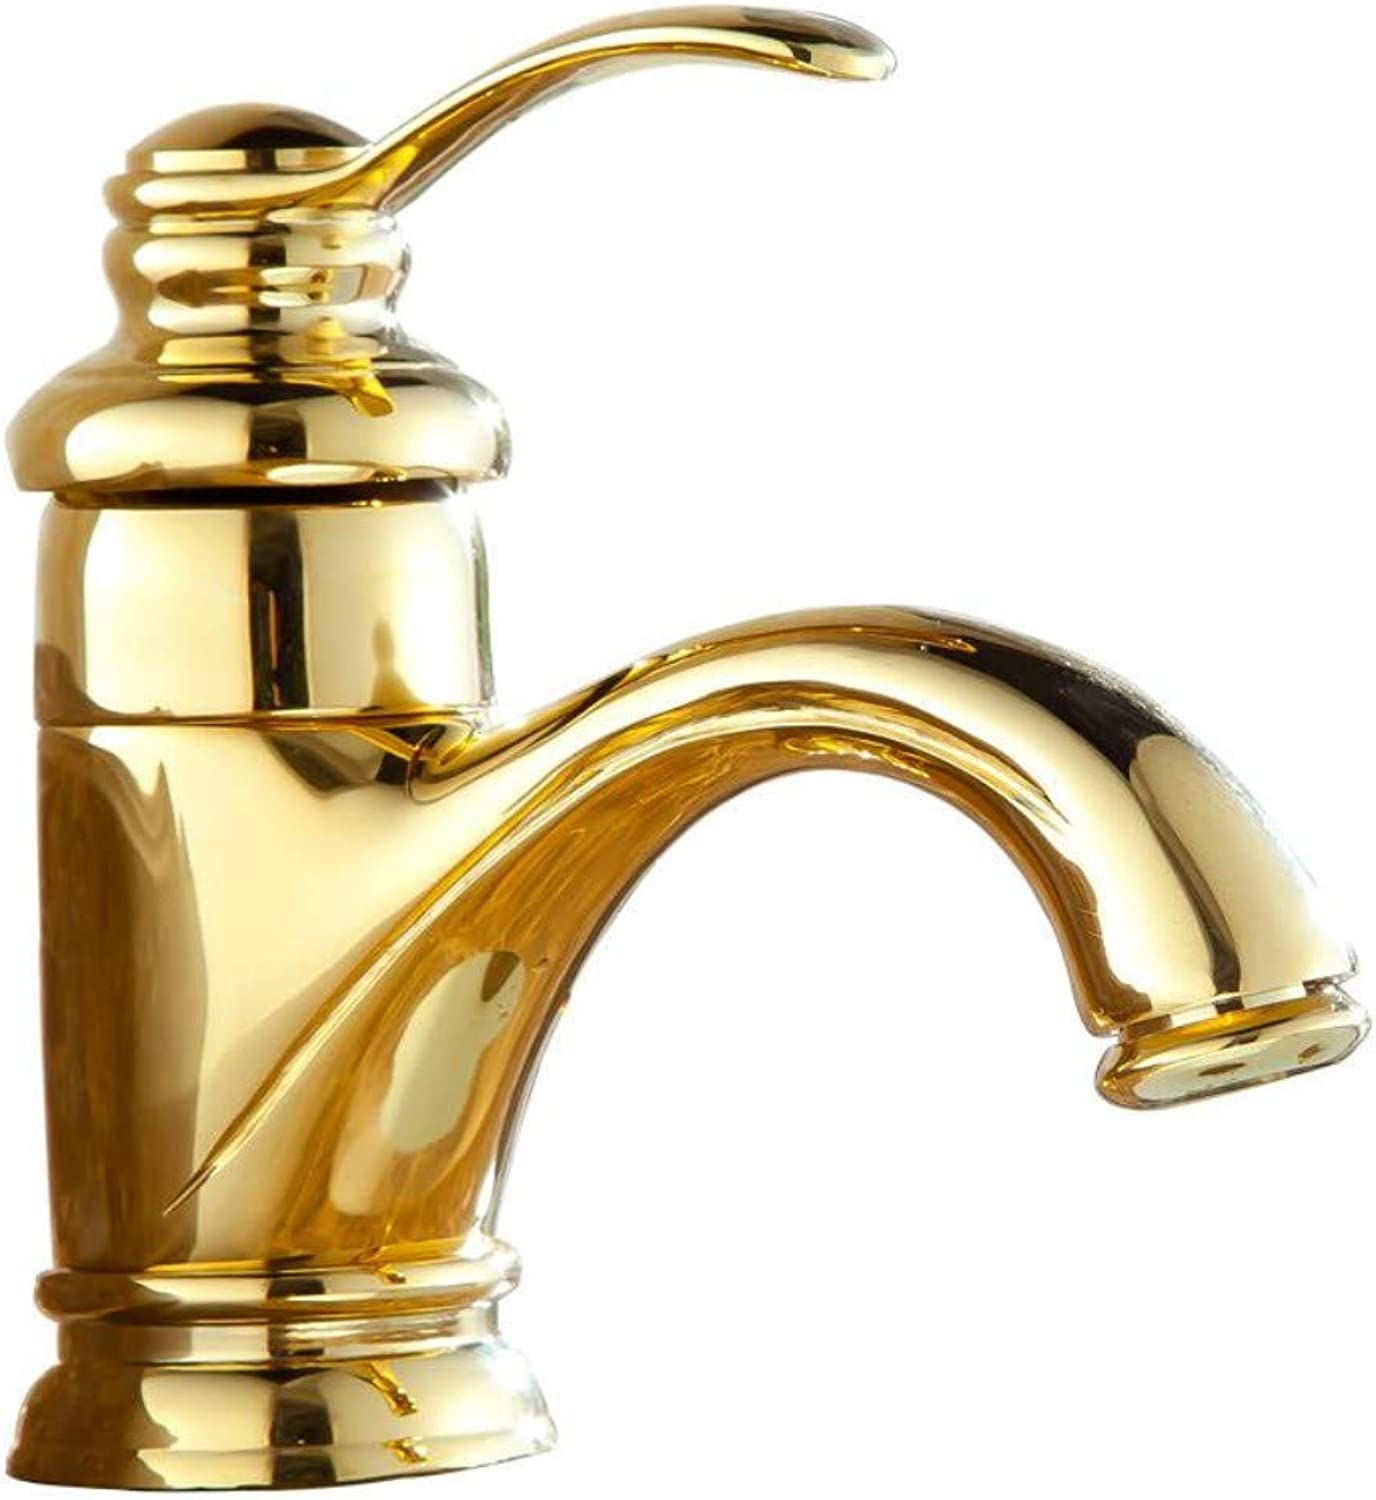 Faucetbathroom Faucet Basin Faucets golden Modern Deck Mounted Bathroom Sink Faucet Washbasin Single Handle Hot and Cold Water Taps